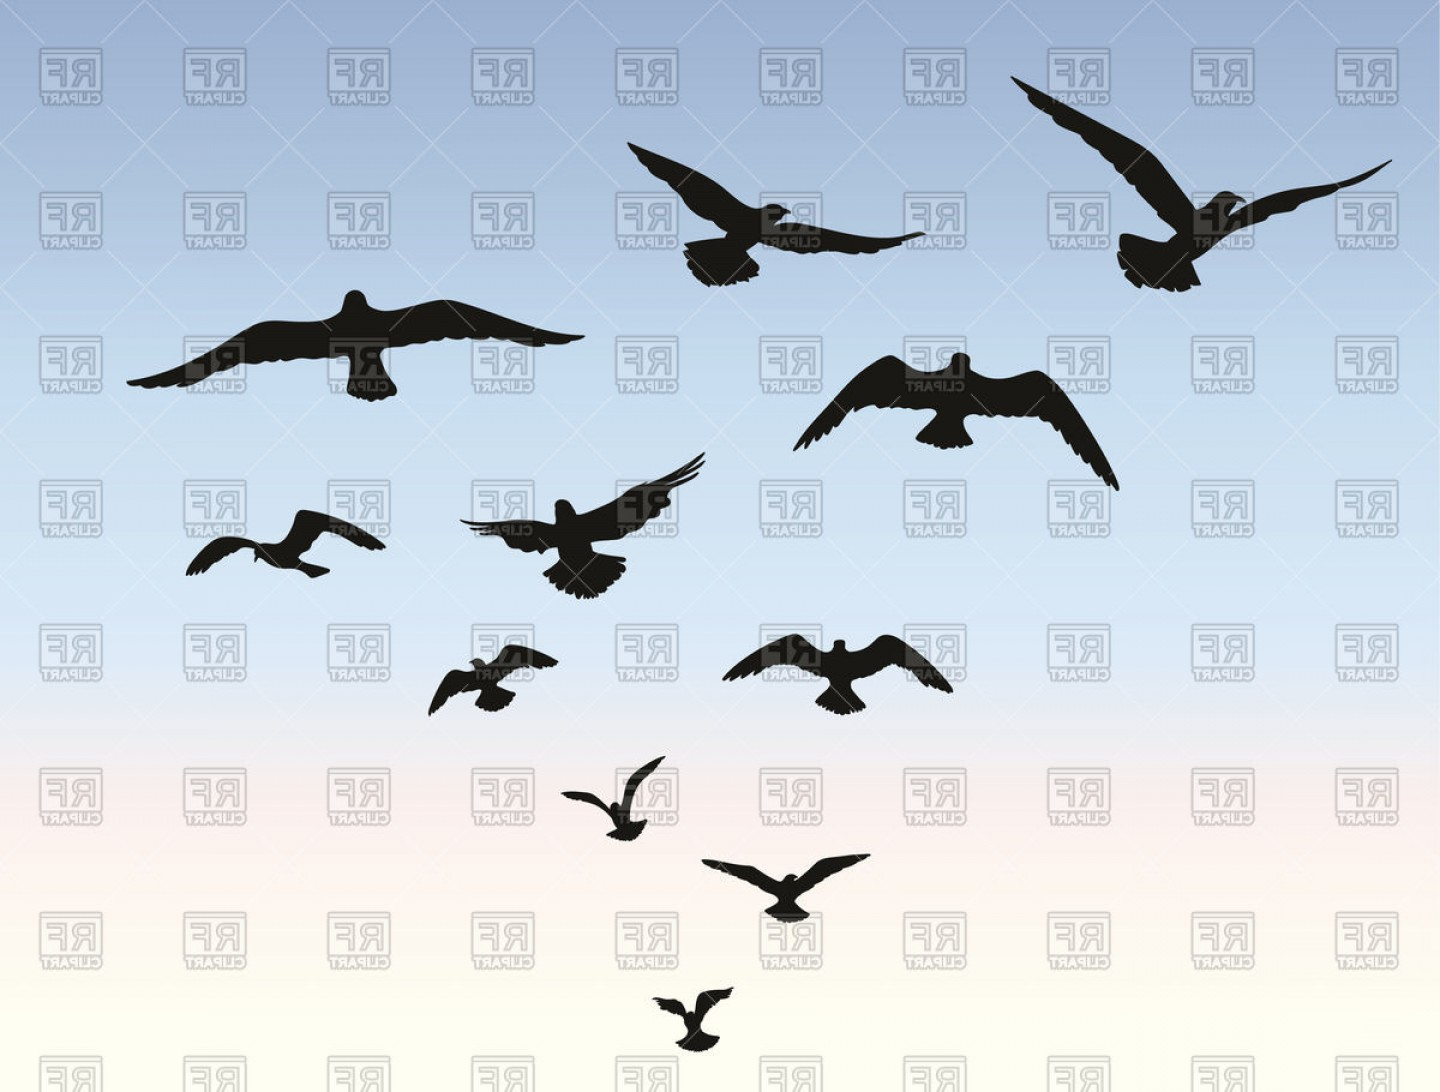 Bird Flying Silhouette Over Blue Sky Background Animal Wildlife.